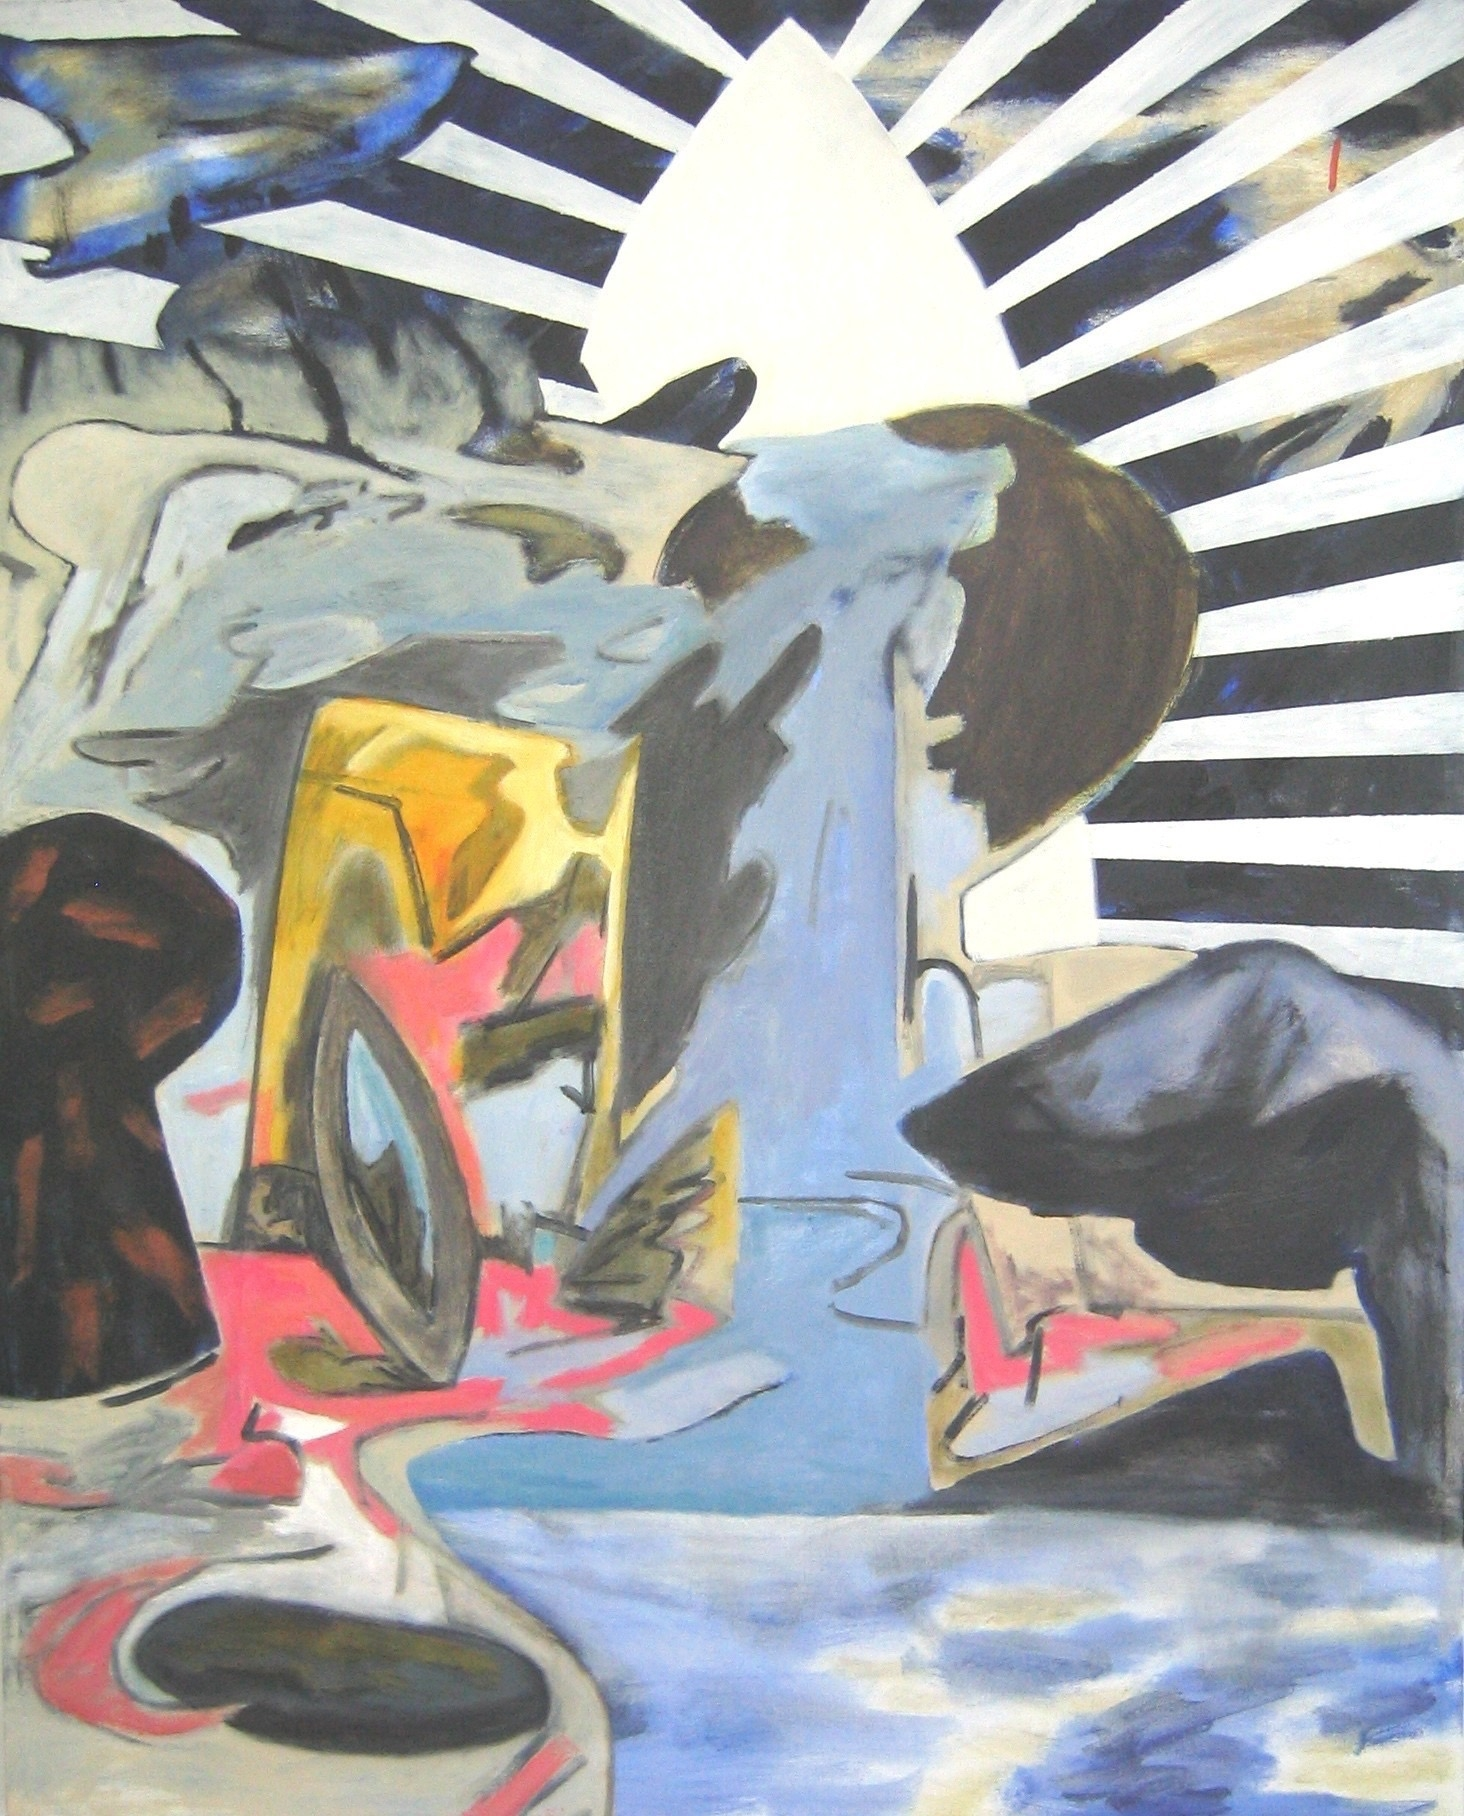 The Radiant Threshold (2006-2009)